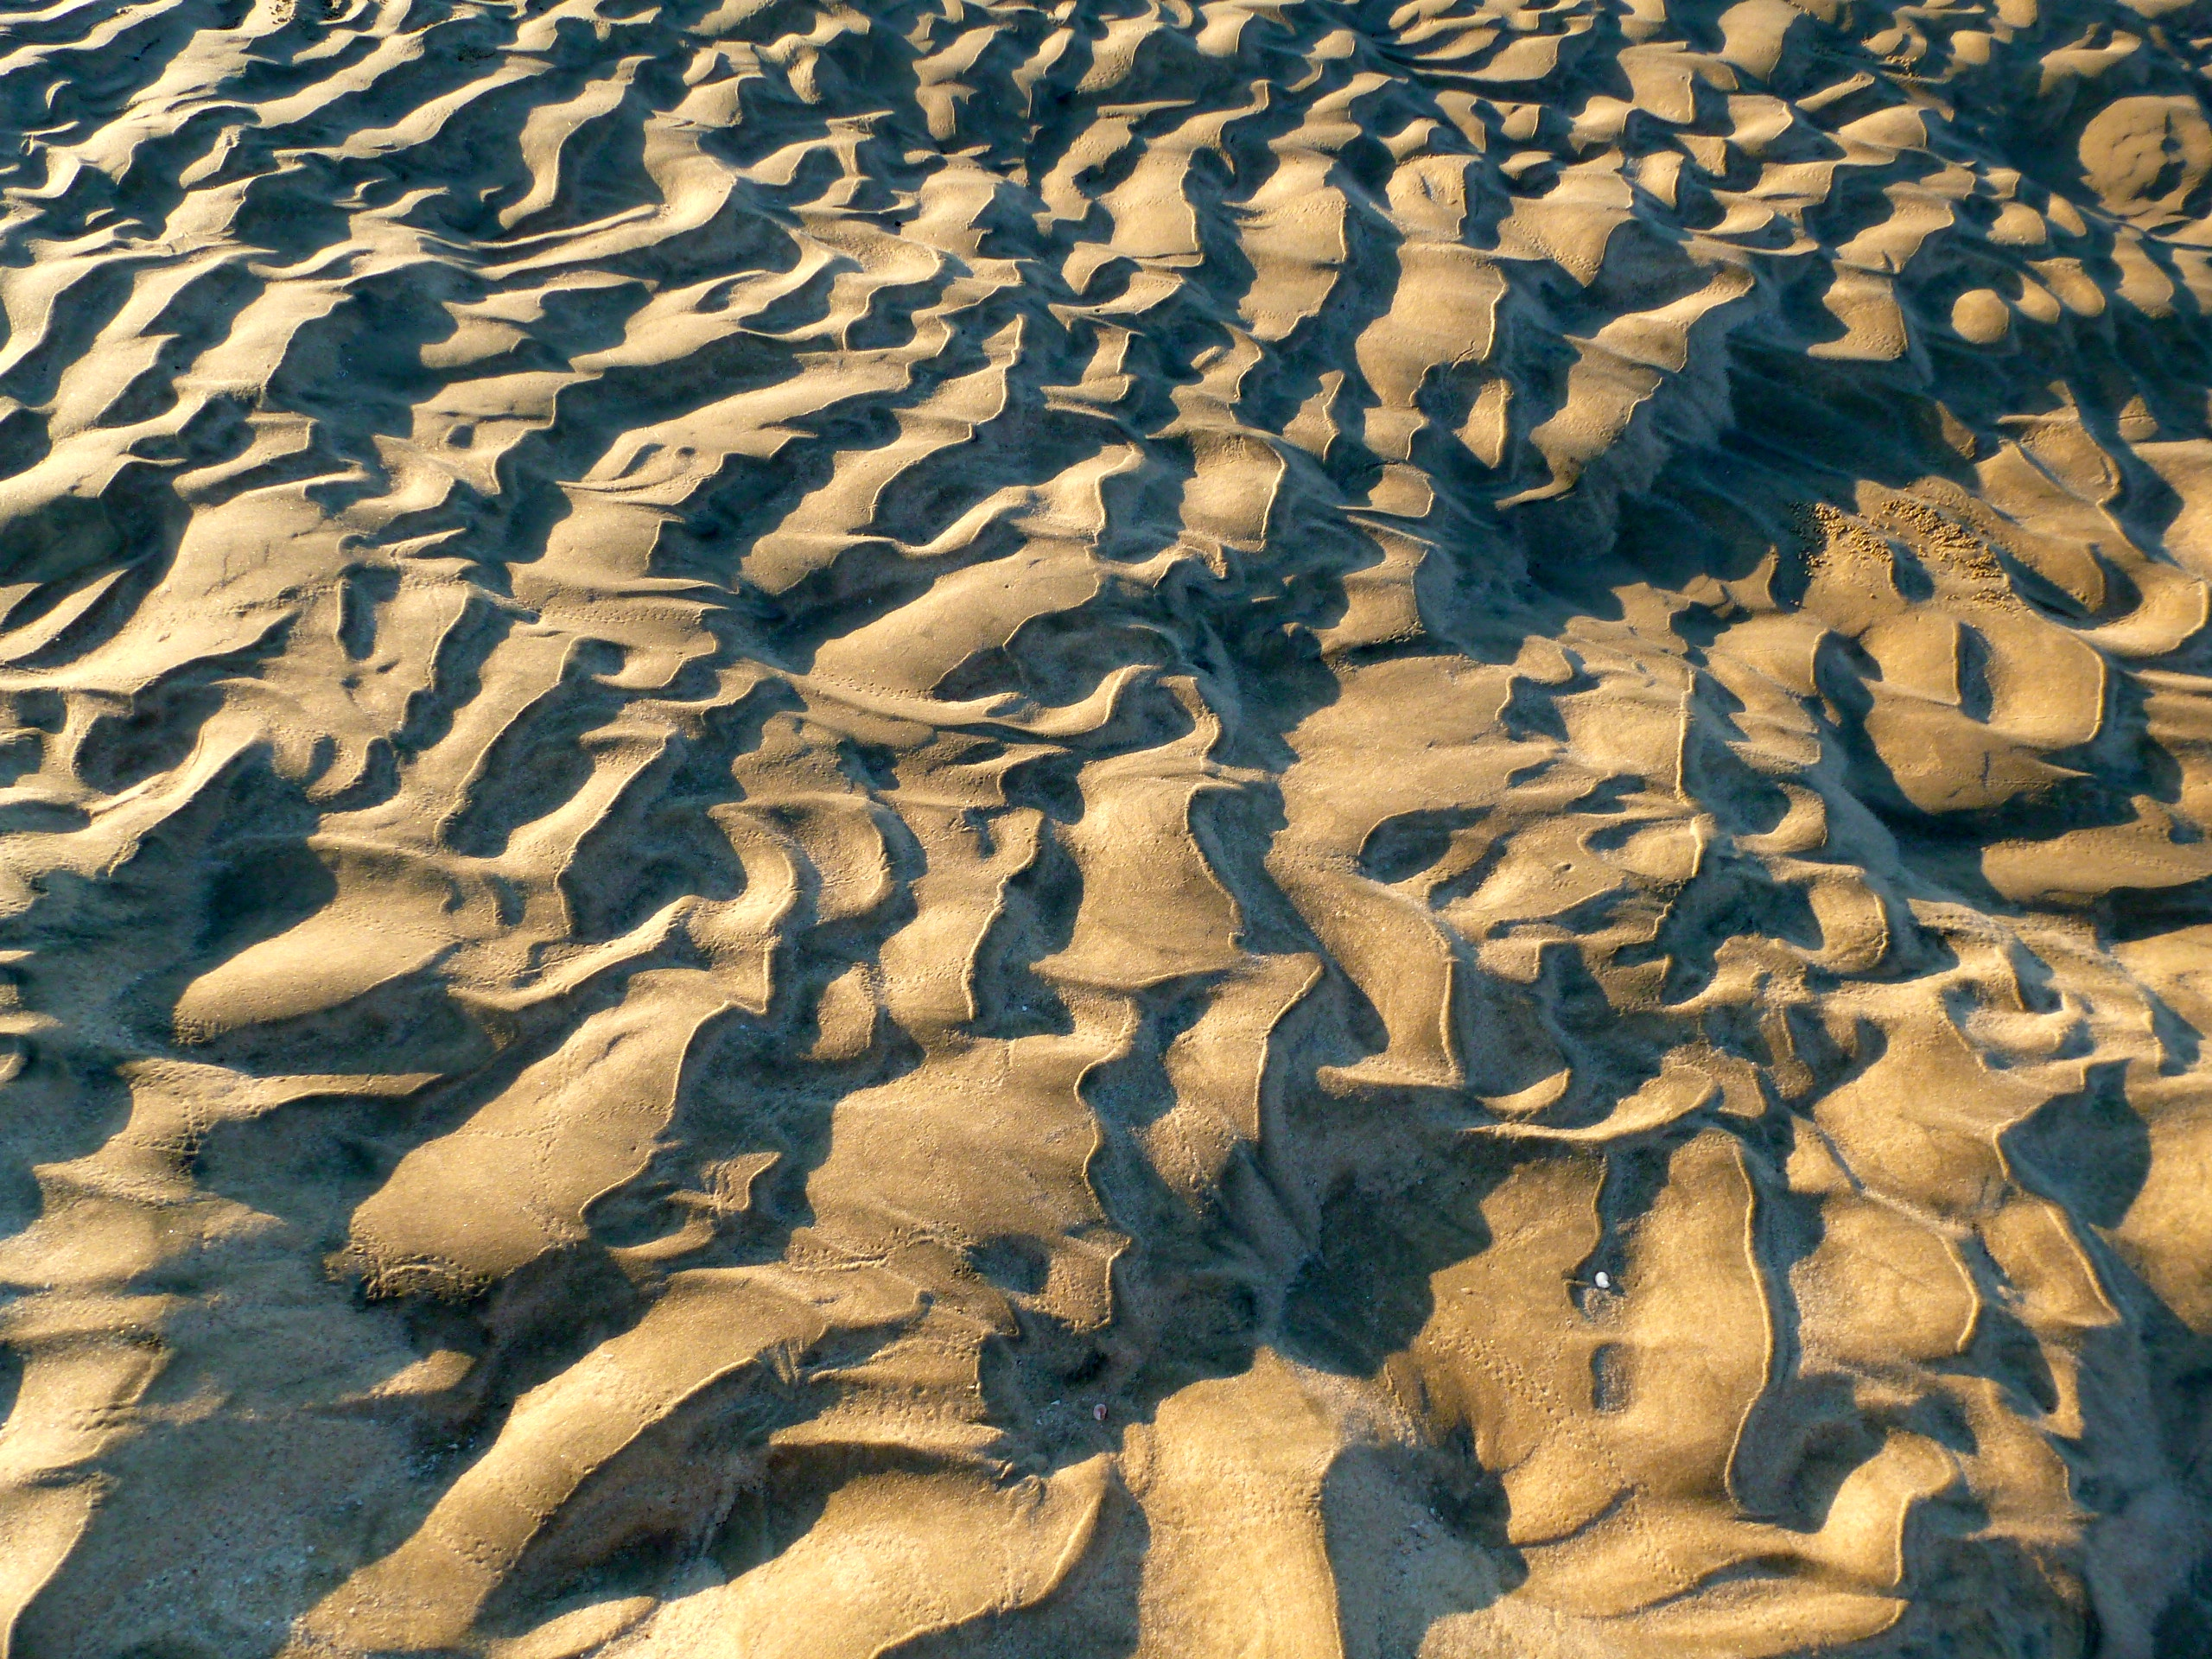 Sand formations